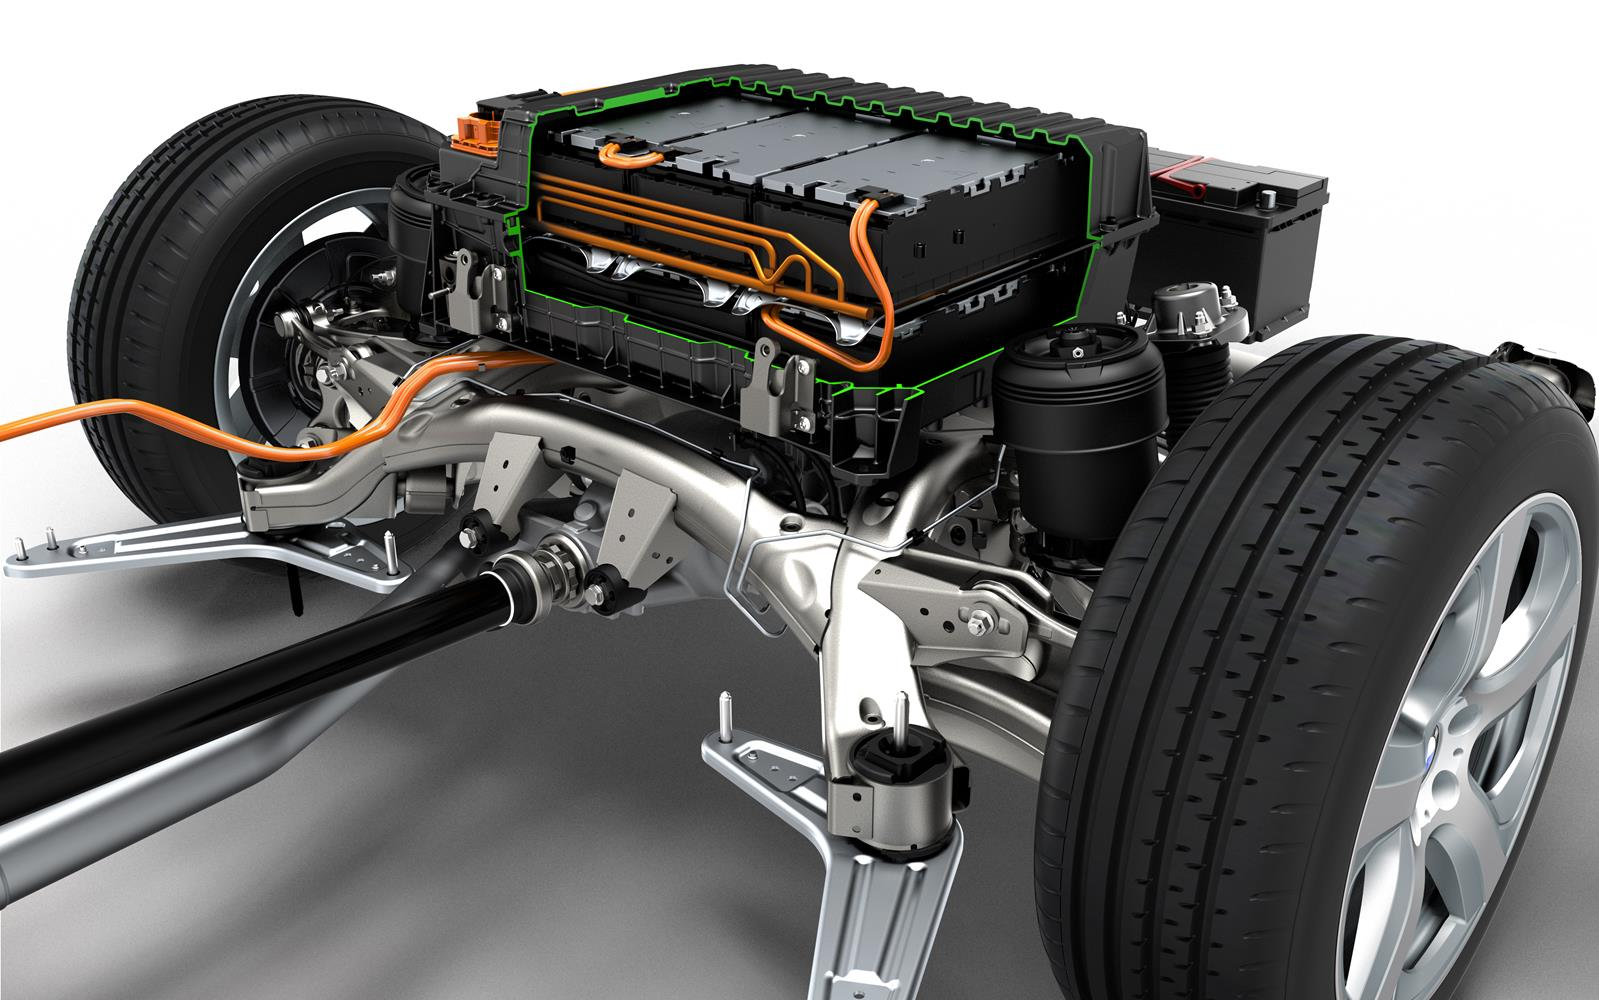 Bmw X5 Edrive Phev Prototype 2014 Battery Pack